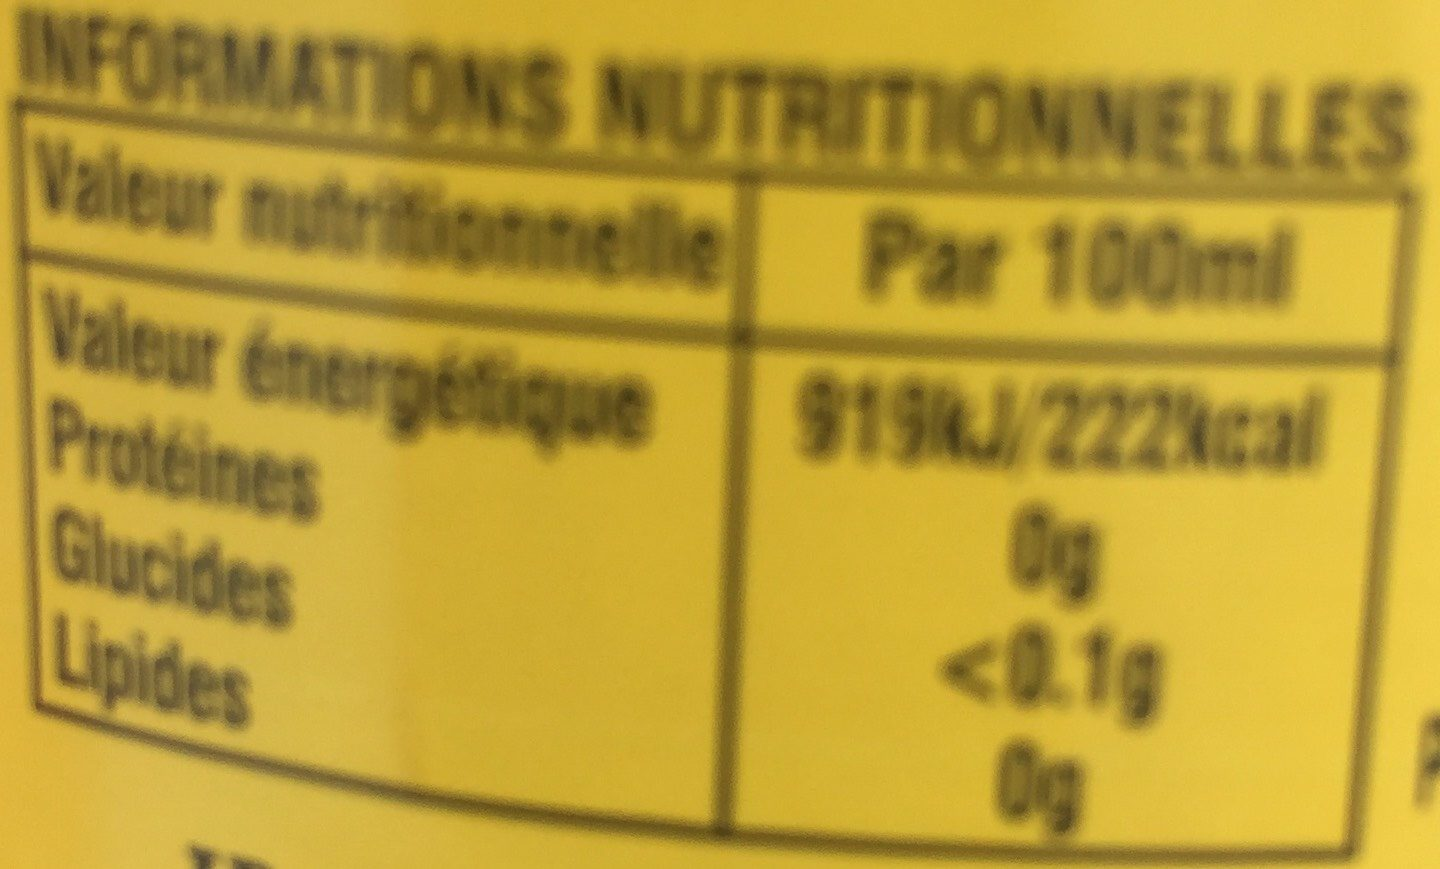 Rare blended scotch whisky - Nutrition facts - fr